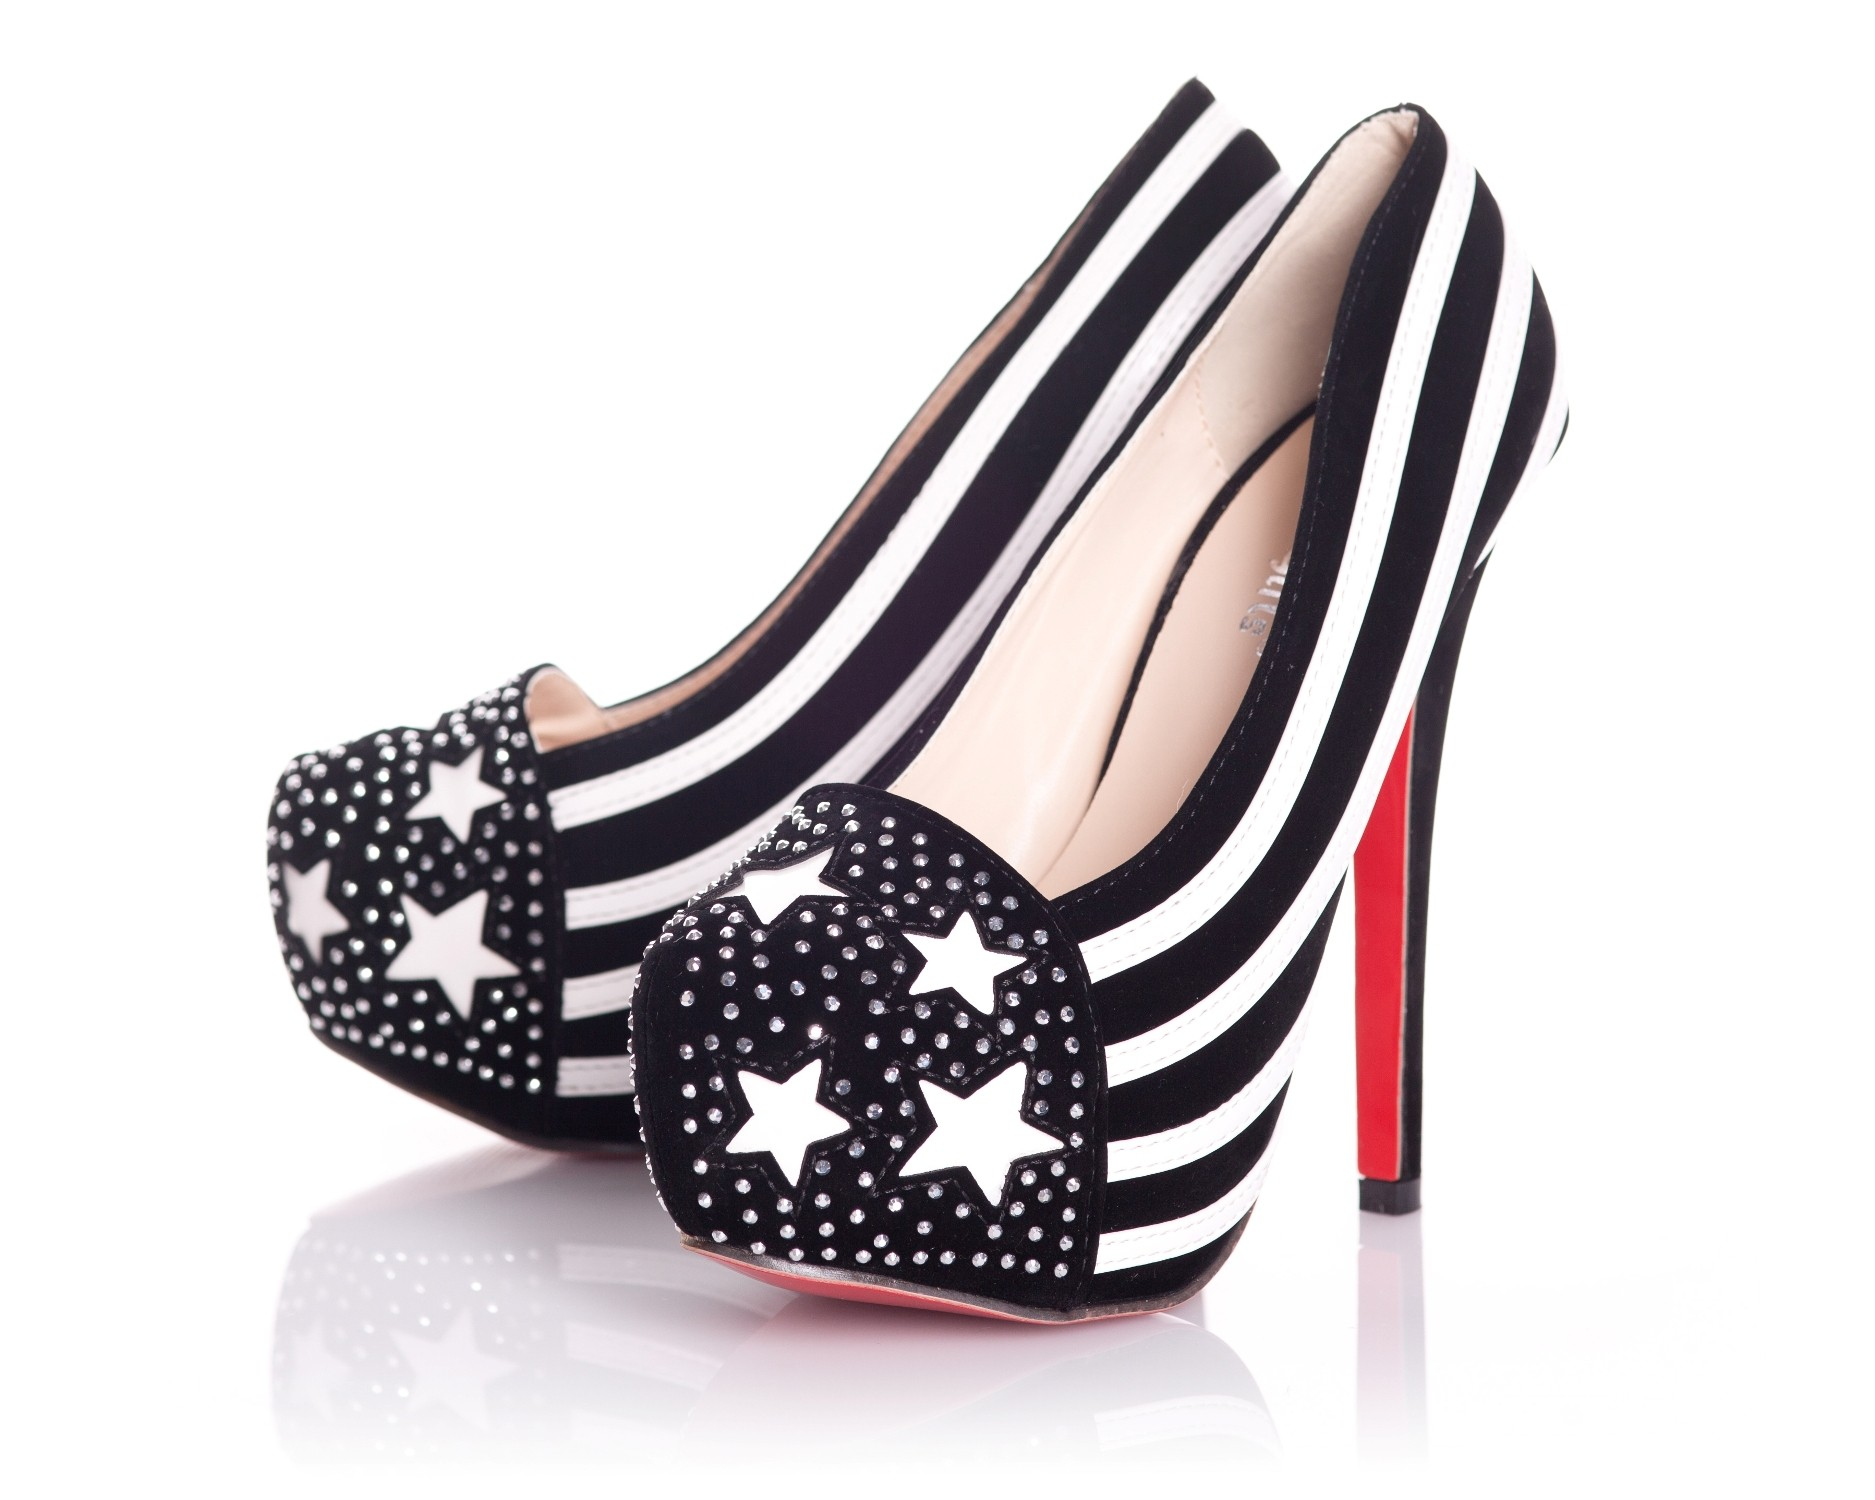 Playgirl Stars & Stripes Shoes In Black & White